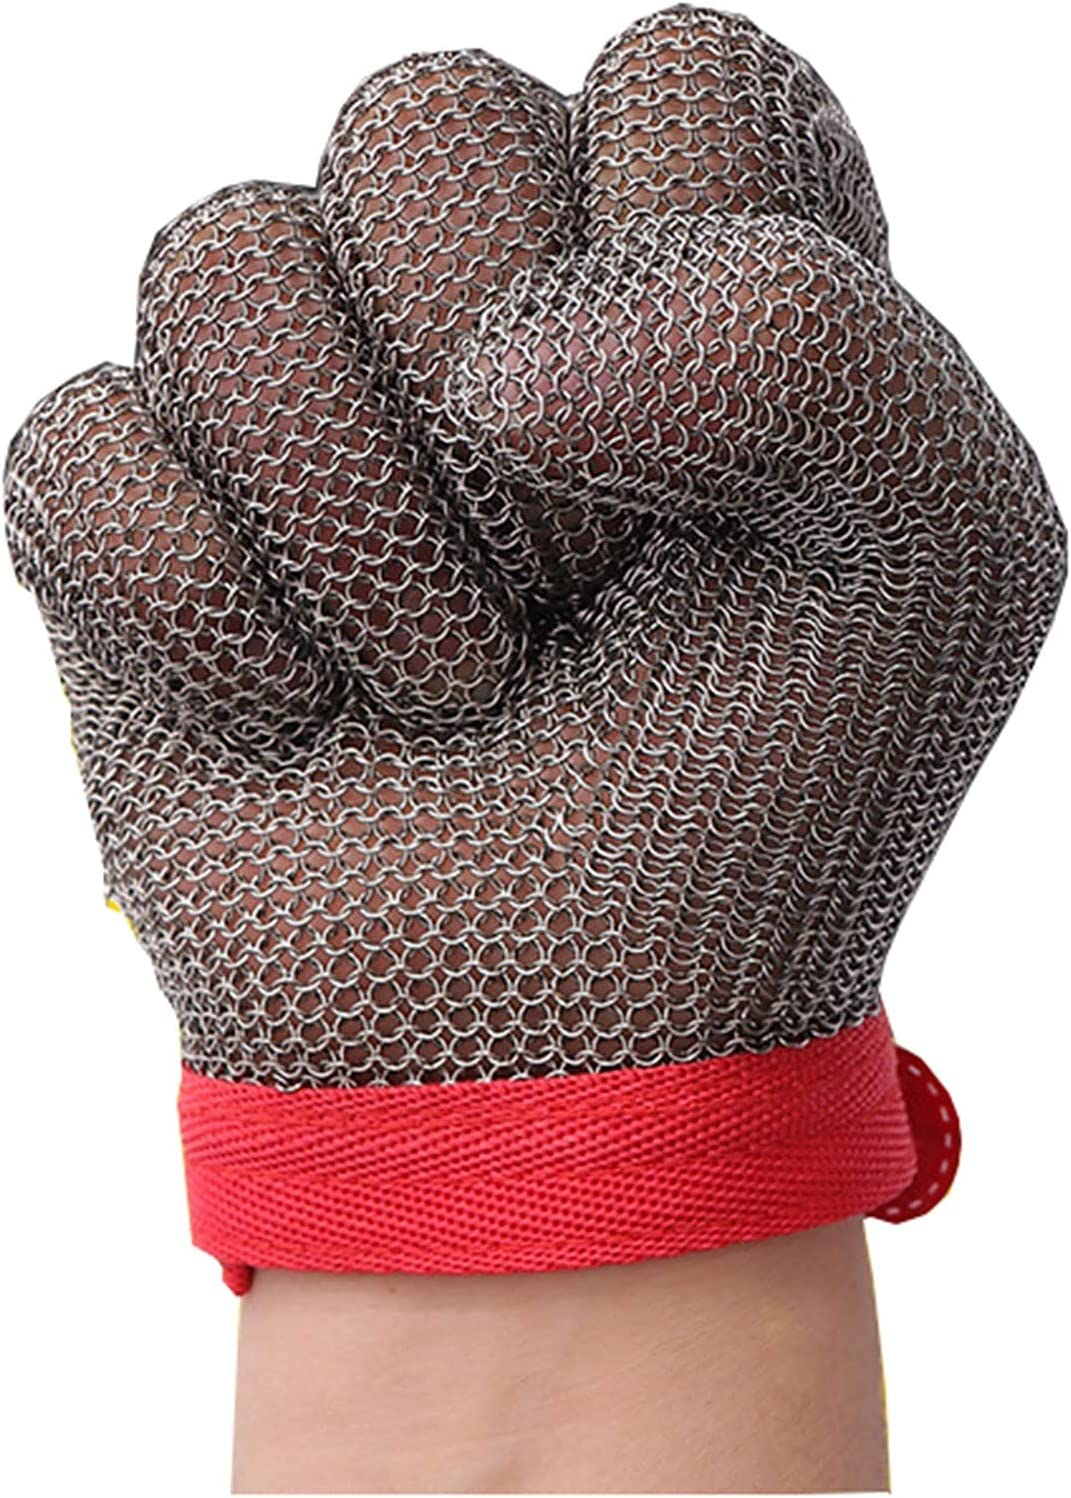 Steel Wire Gloves Cut-Resistant Woodw and Max 42% Ranking TOP2 OFF stab-Resistant